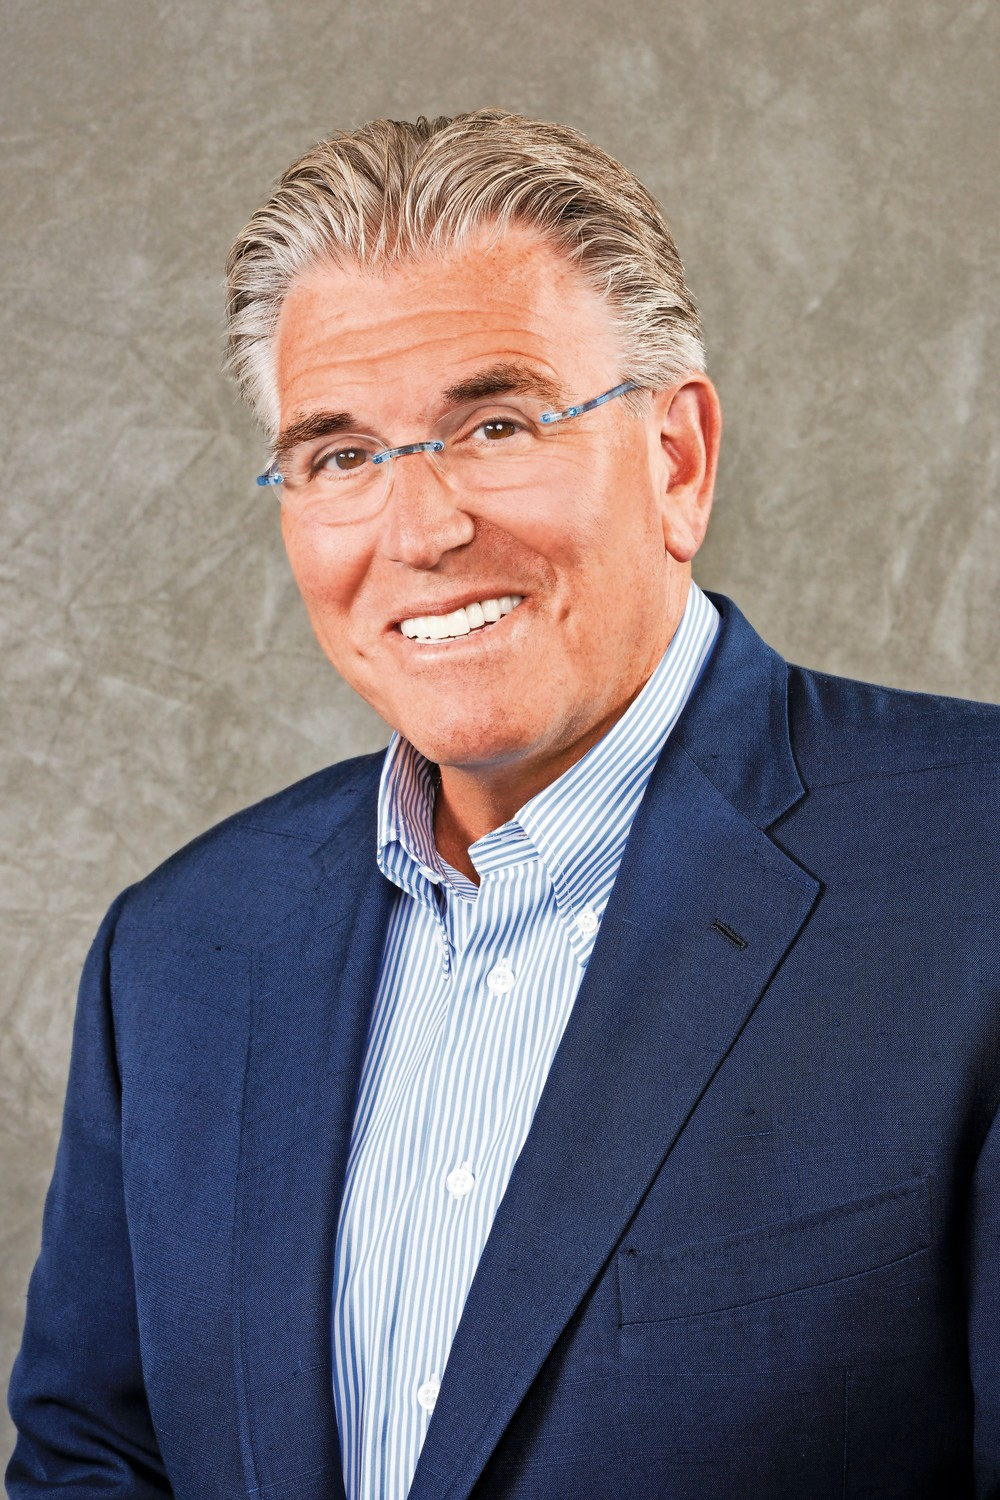 Sports talk radio legend Mike Francesa grew up on Oswego Avenue in East Atlantic Beach and attended Long Beach Catholic Regional School, where he played CYO basketball. (Photo: John Filo/CBS)